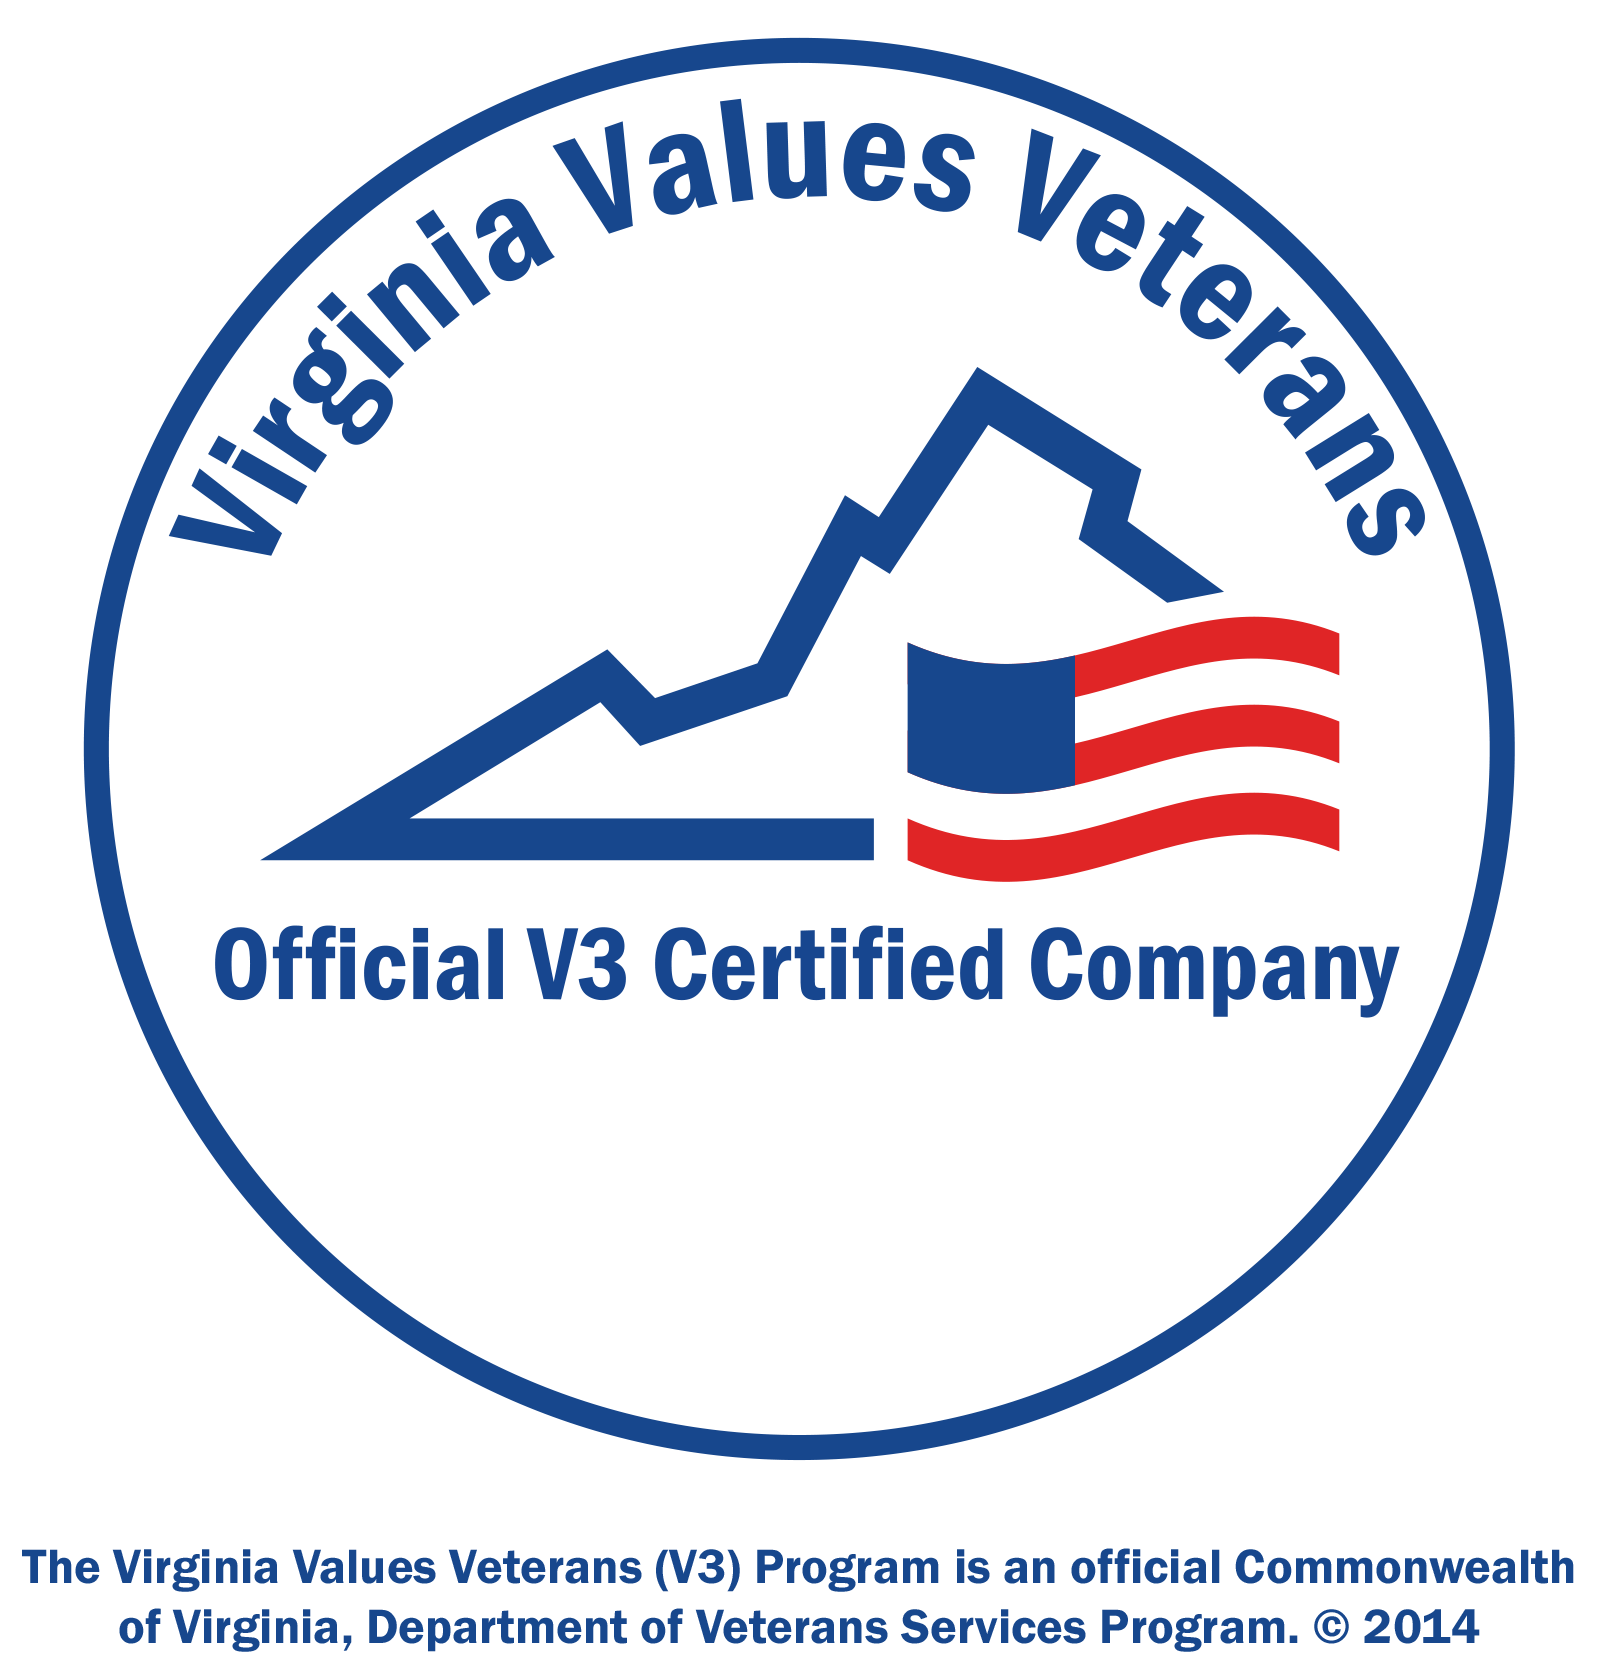 Virginia Values Vets Certification